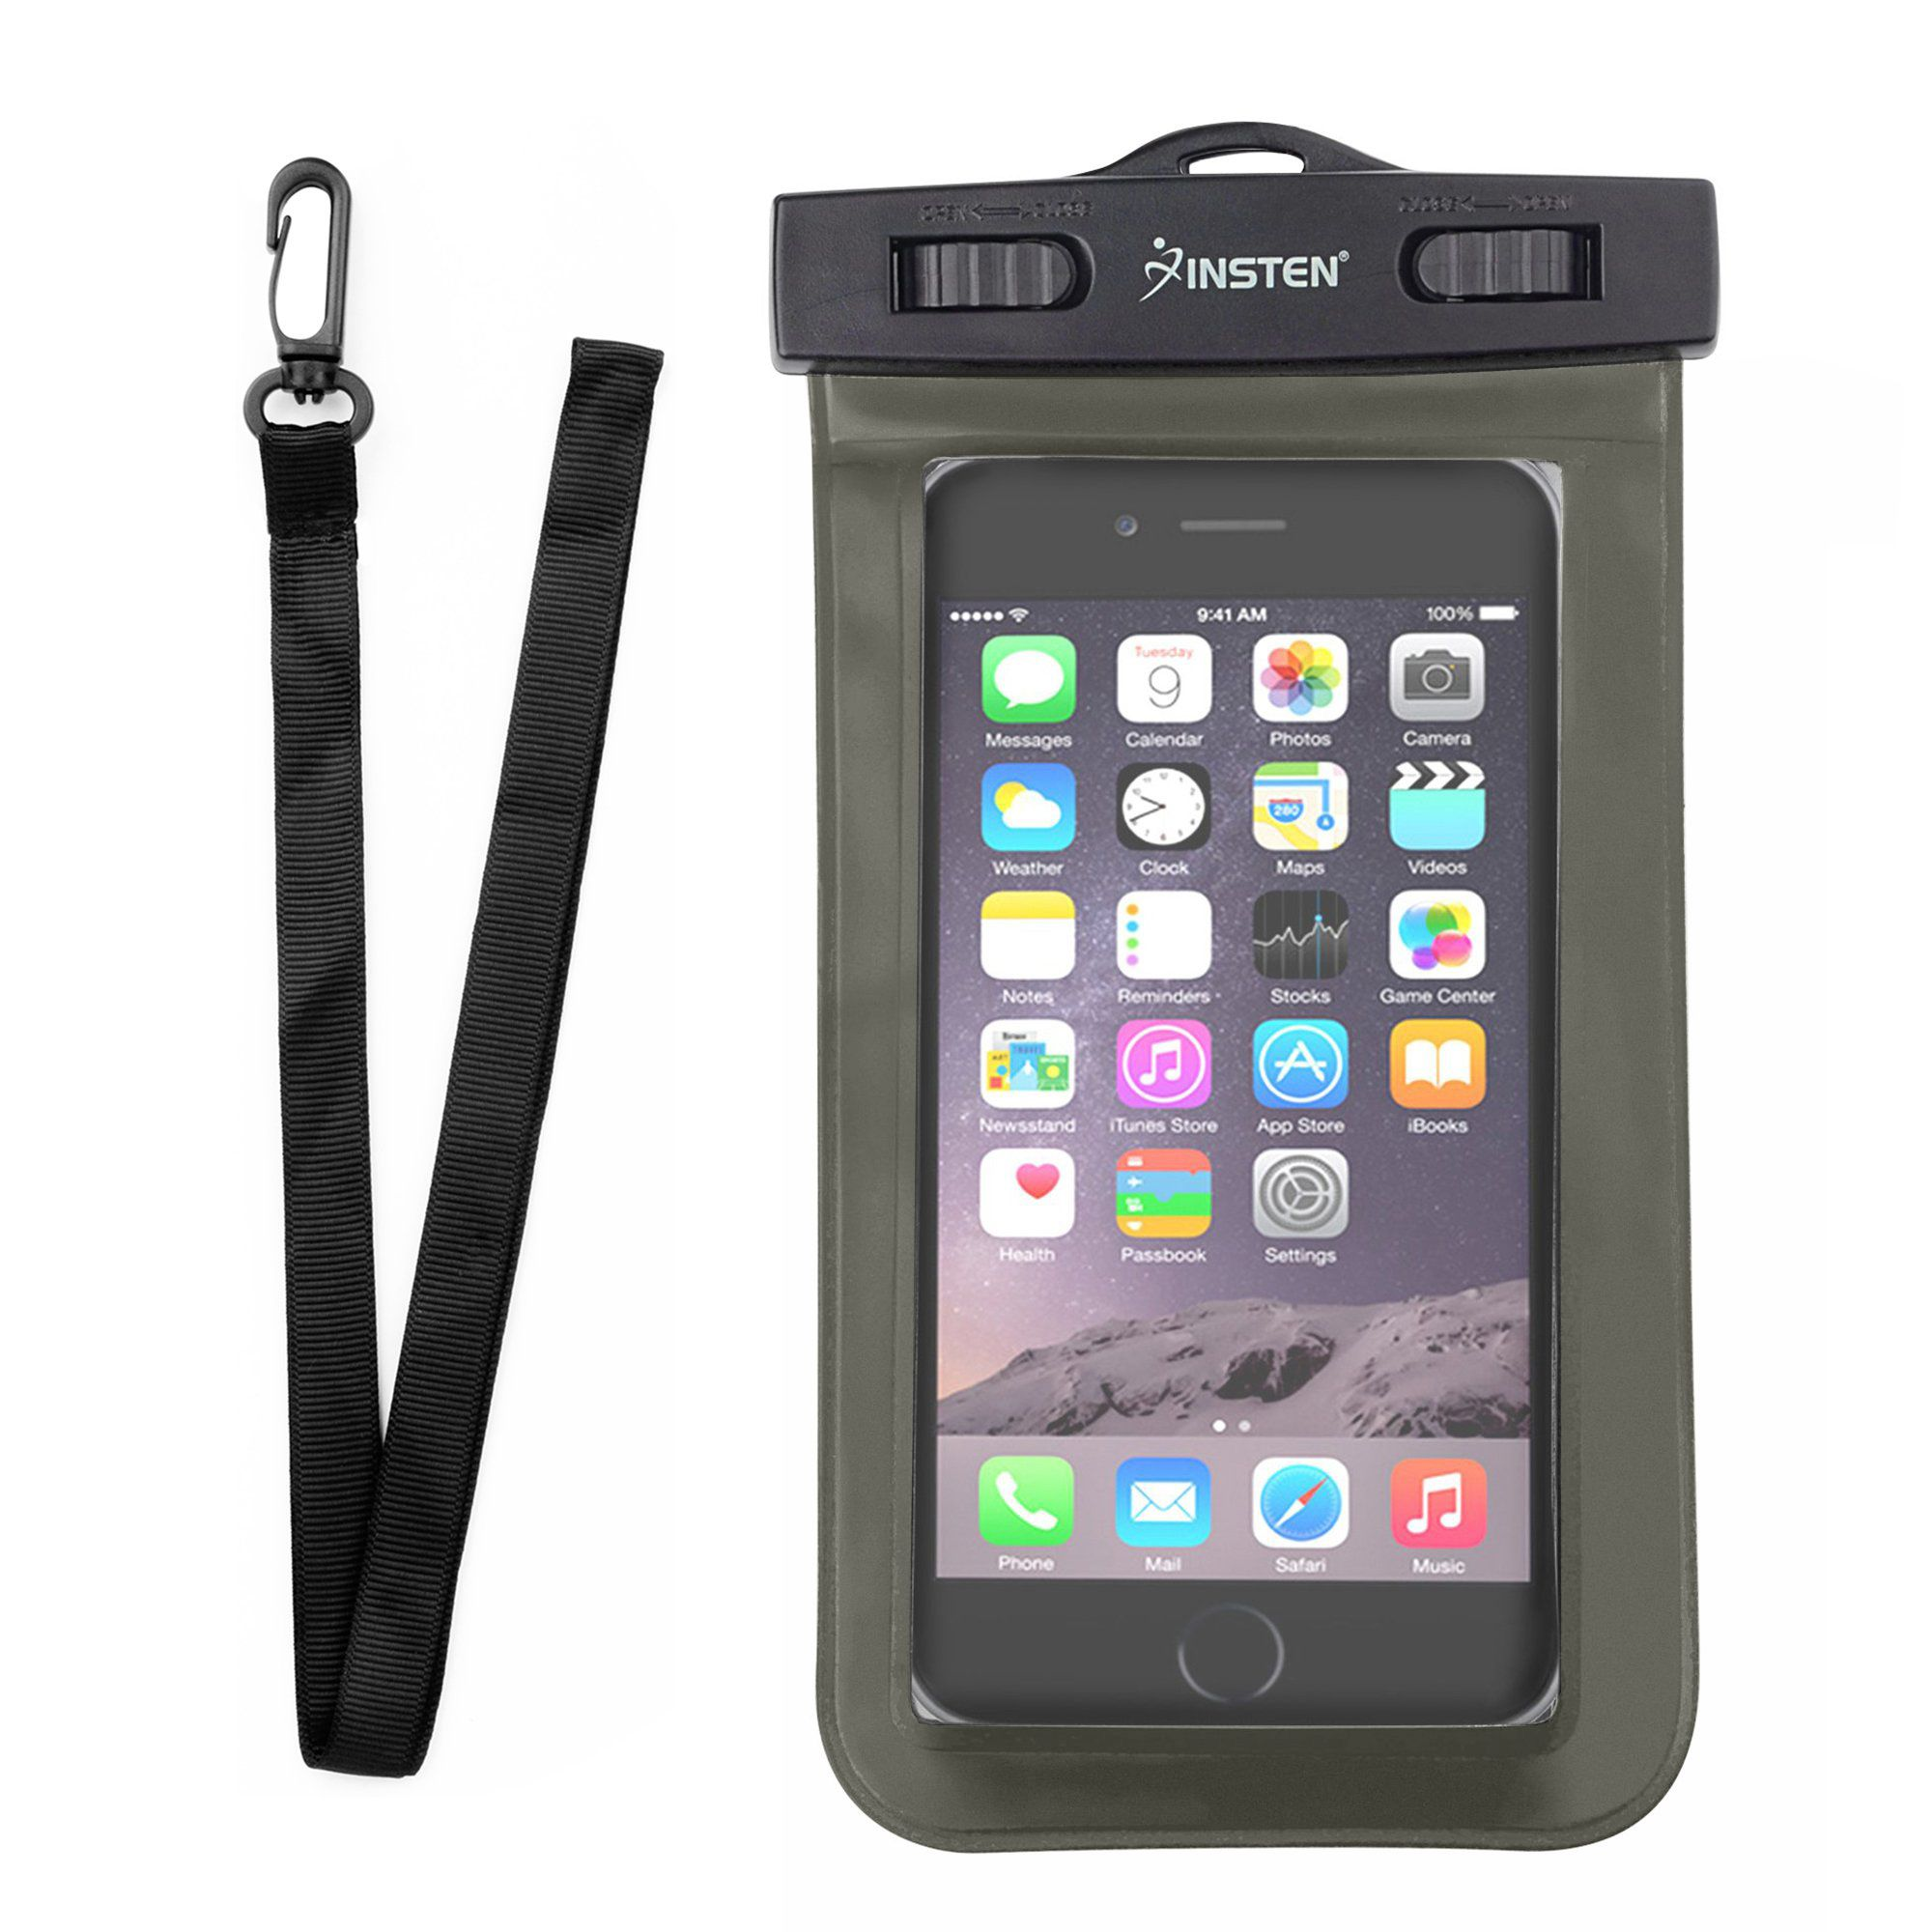 "Insten Black Waterproof Bag Carrying Case Pouch (6.5"" x 3.9"") with Lanyard & Armband for iPhone 7 6 6s Plus SE Samsung LG HTC Microsoft Nokia Motorola Alcatel ZTE Huawei Asus Universal - up to 3 meter"